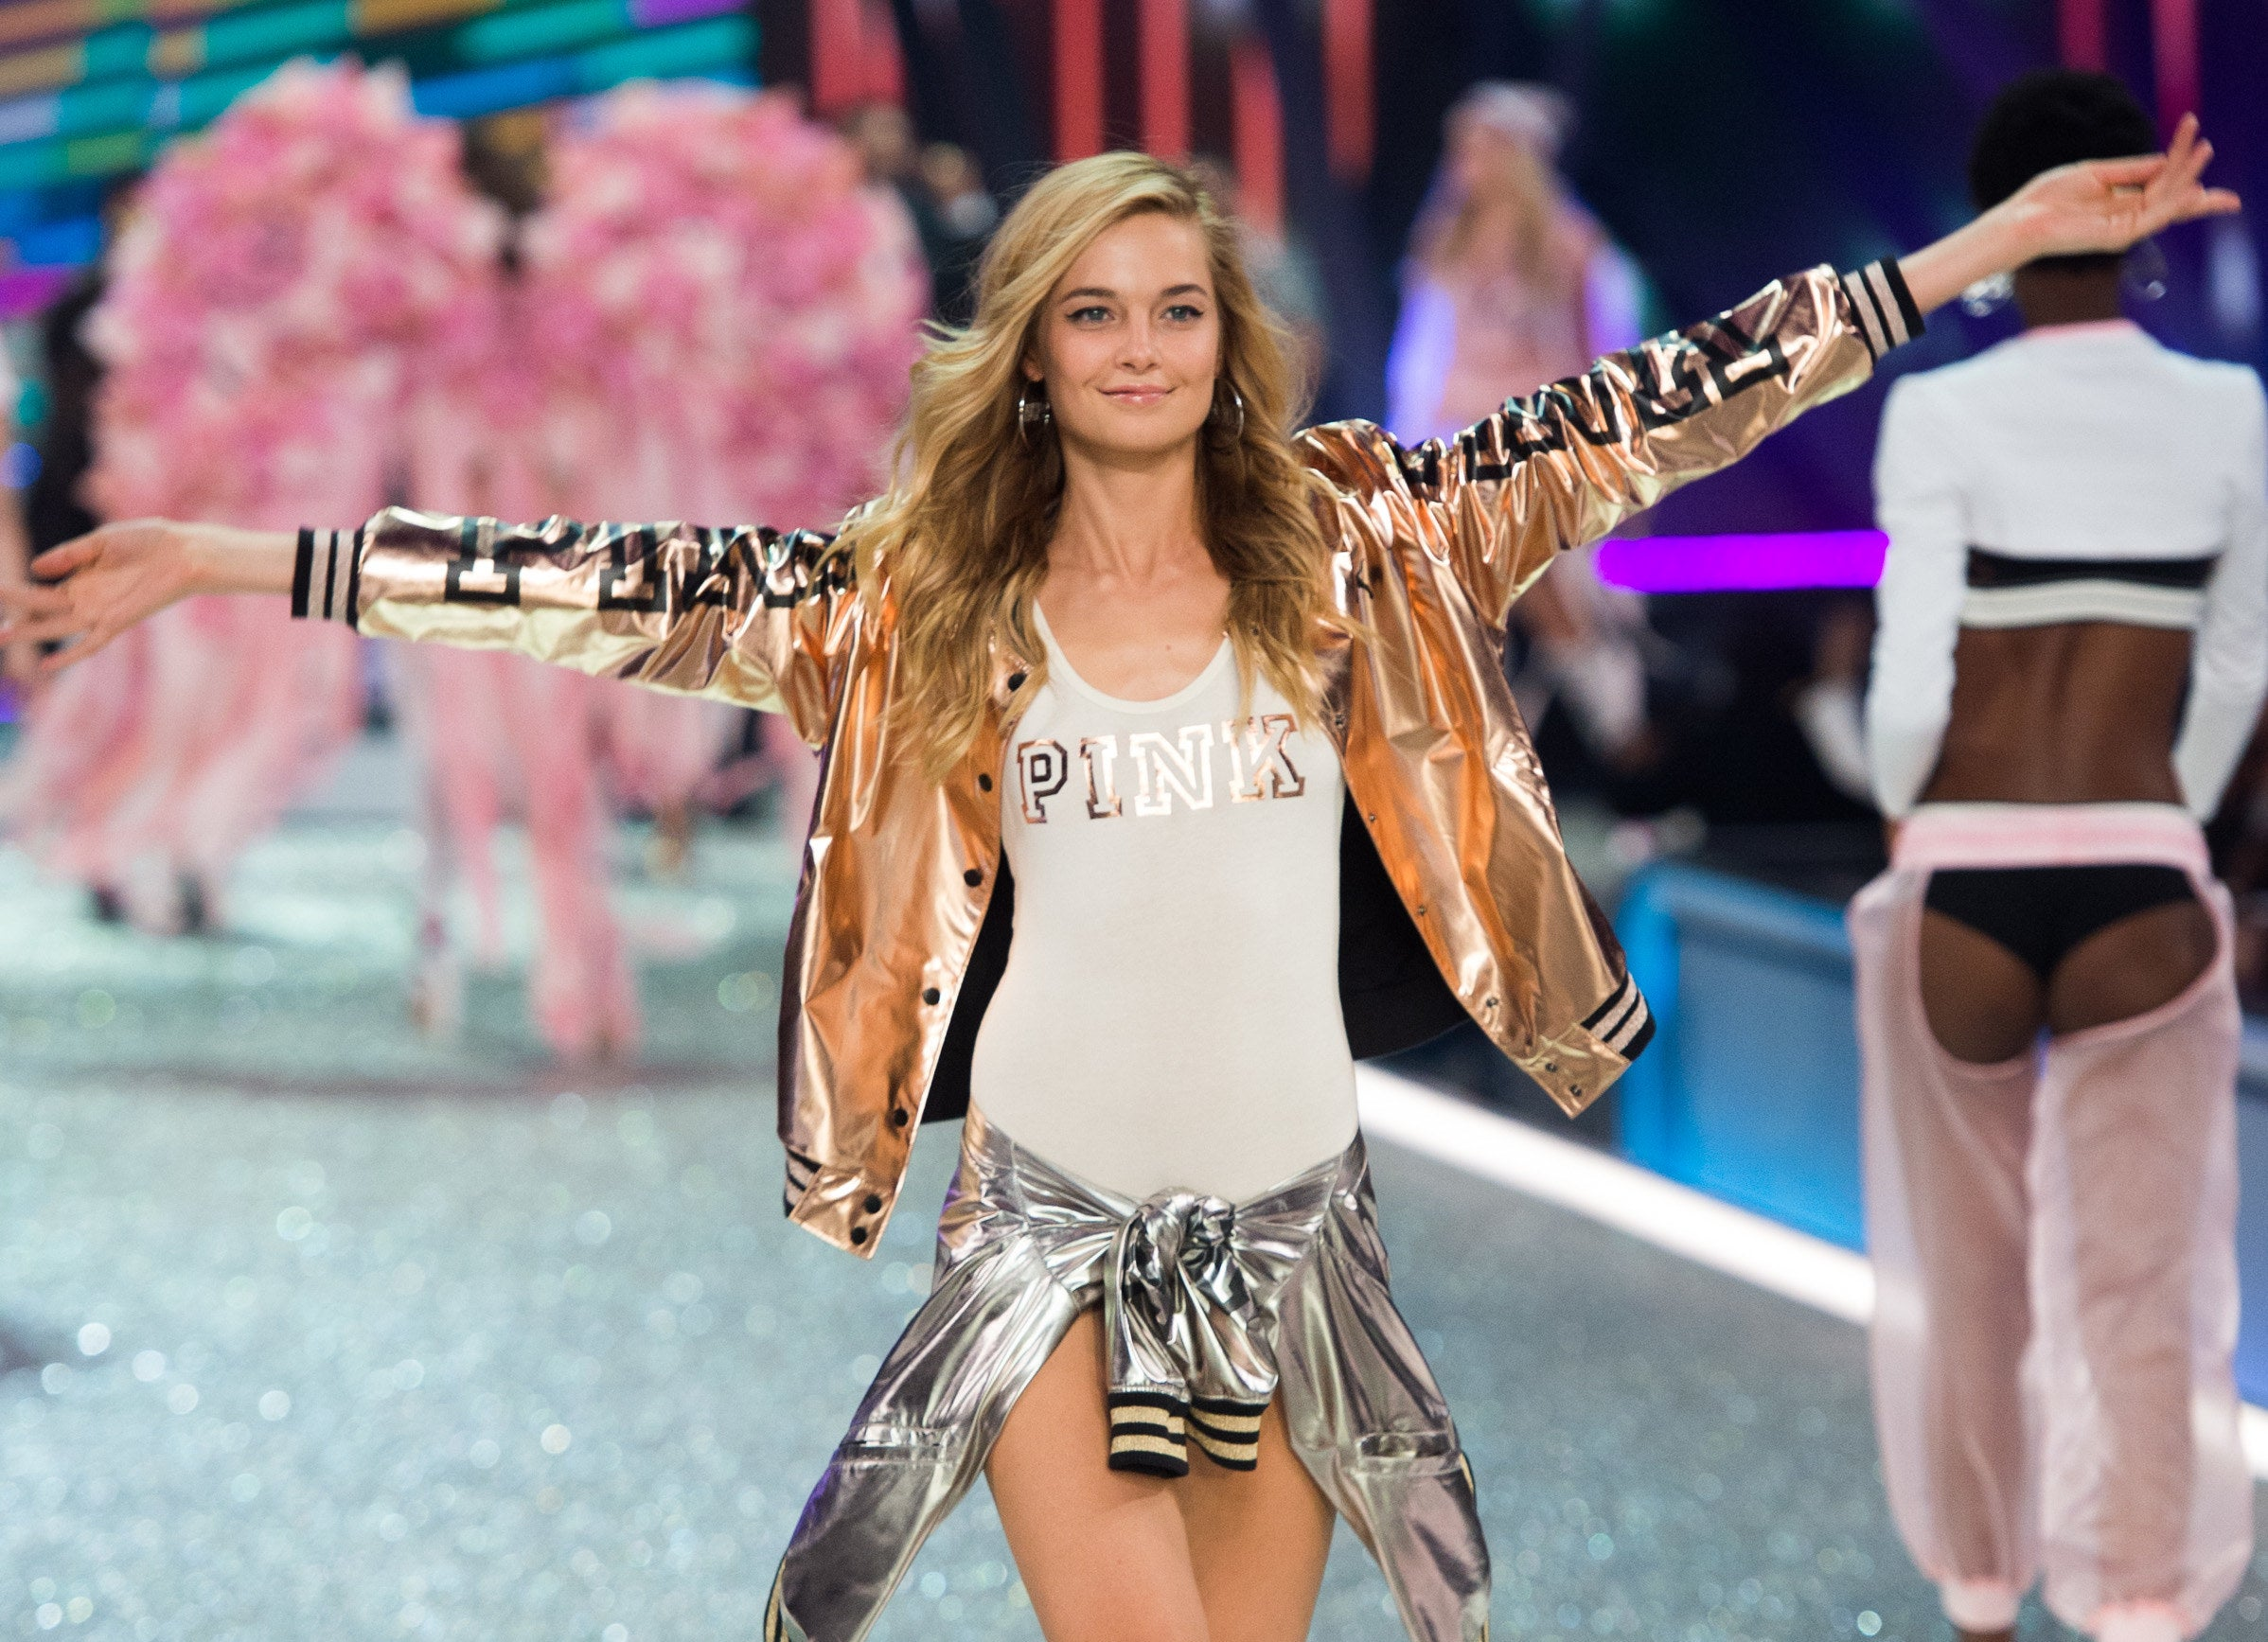 Bridget walks the Victoria's Secret runway with her arms stretched out